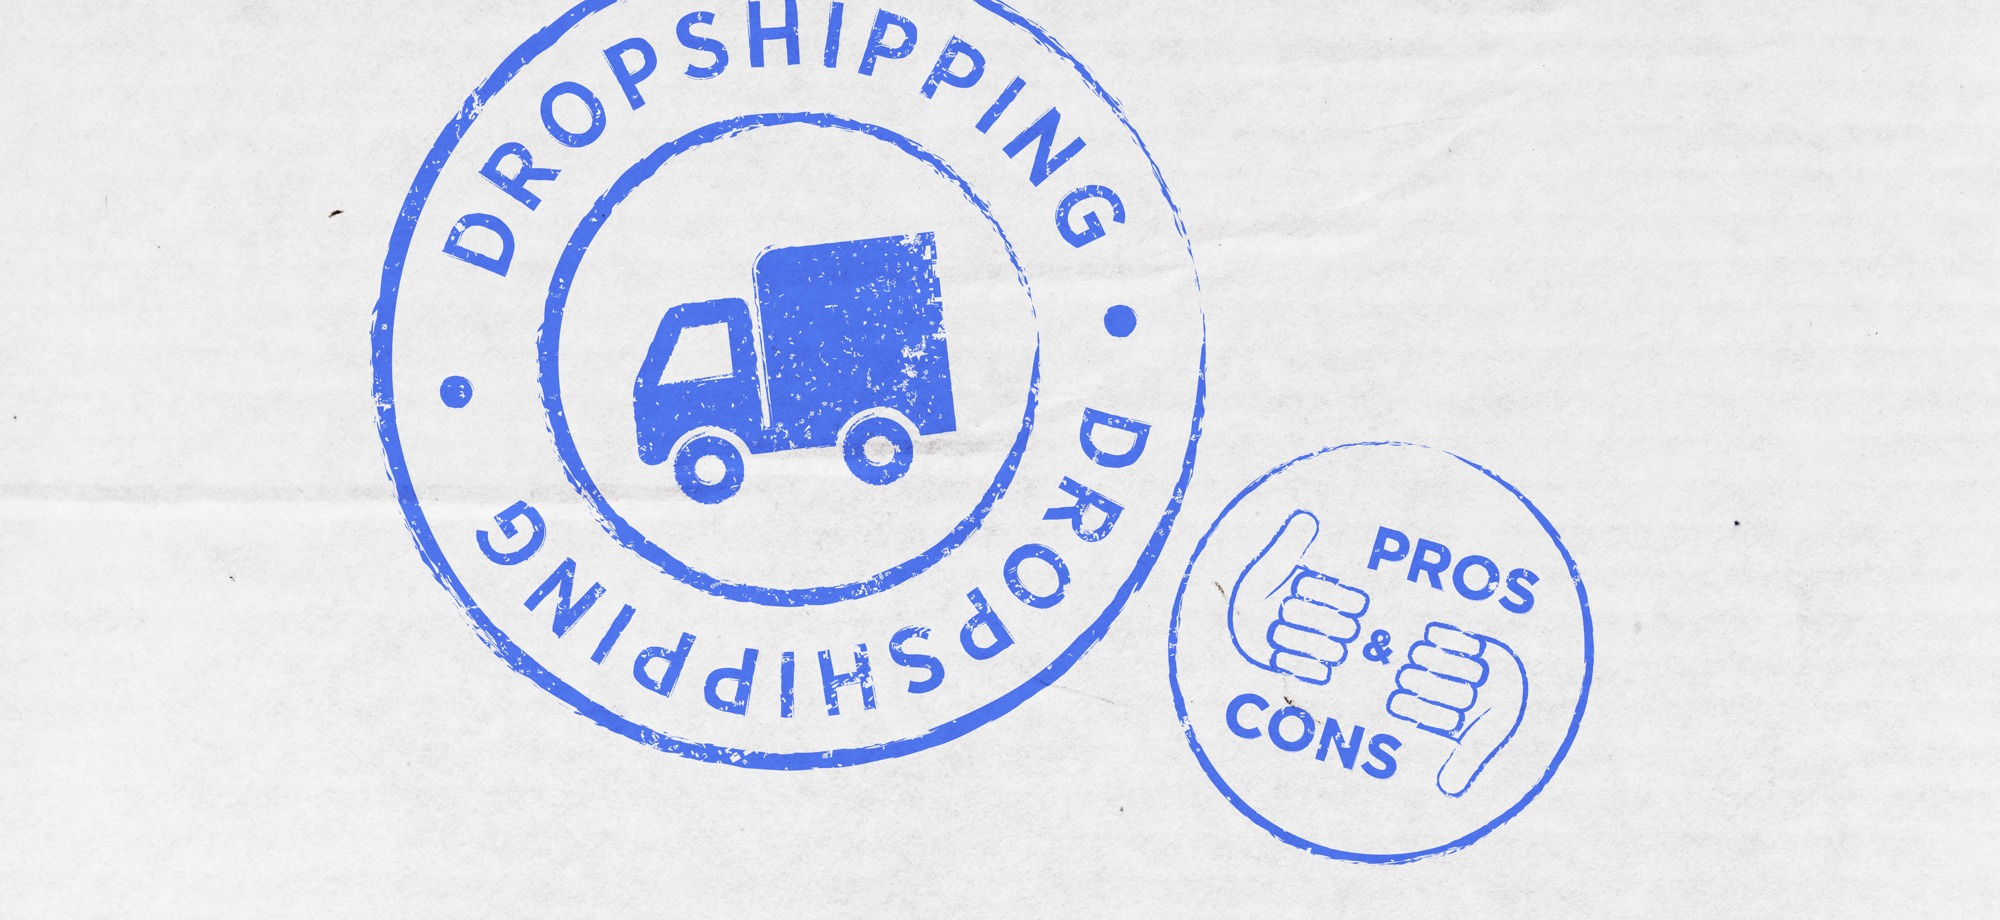 Dropshipping in 2019: Does It Actually Work? (Pros + Cons)